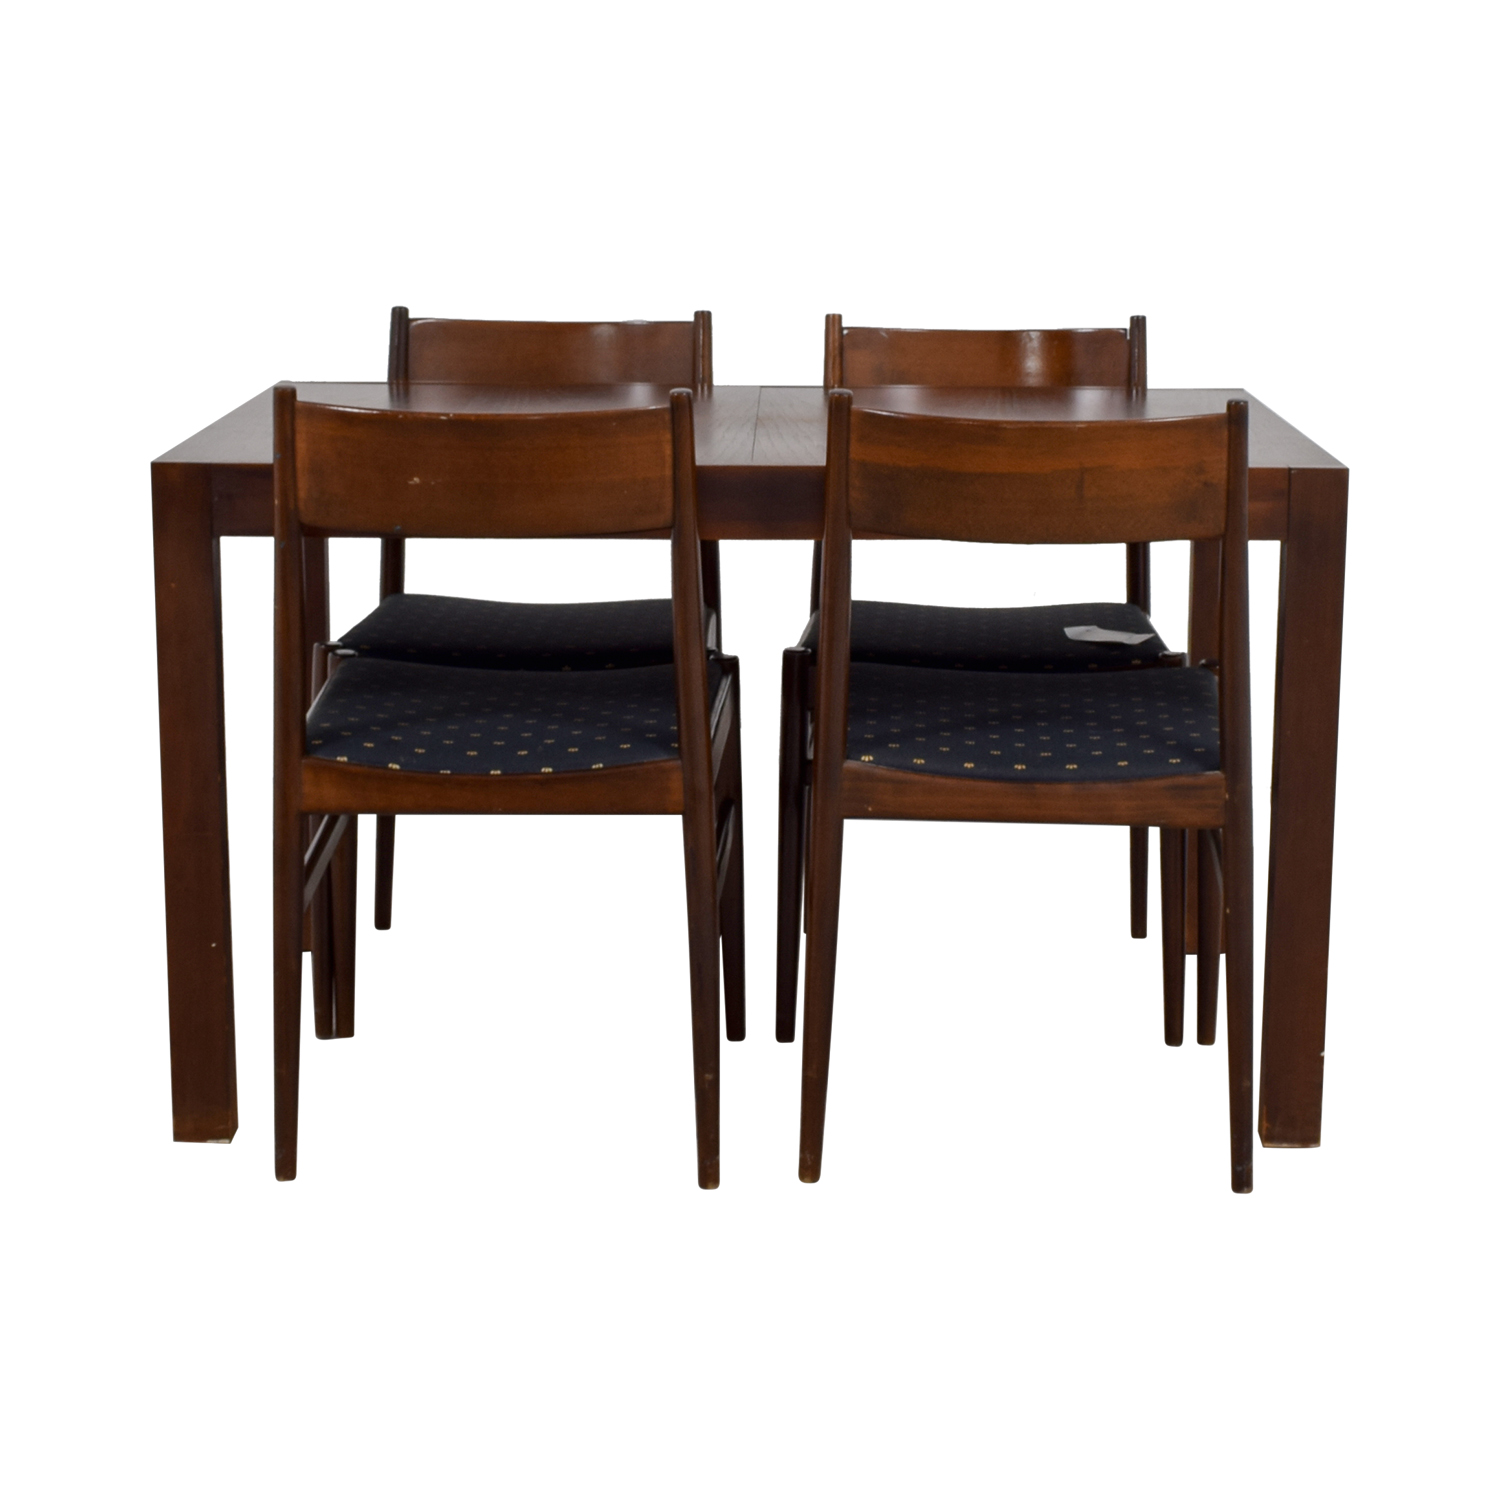 Extendable Wood Dining Set With Blue Seat Cushions Sale